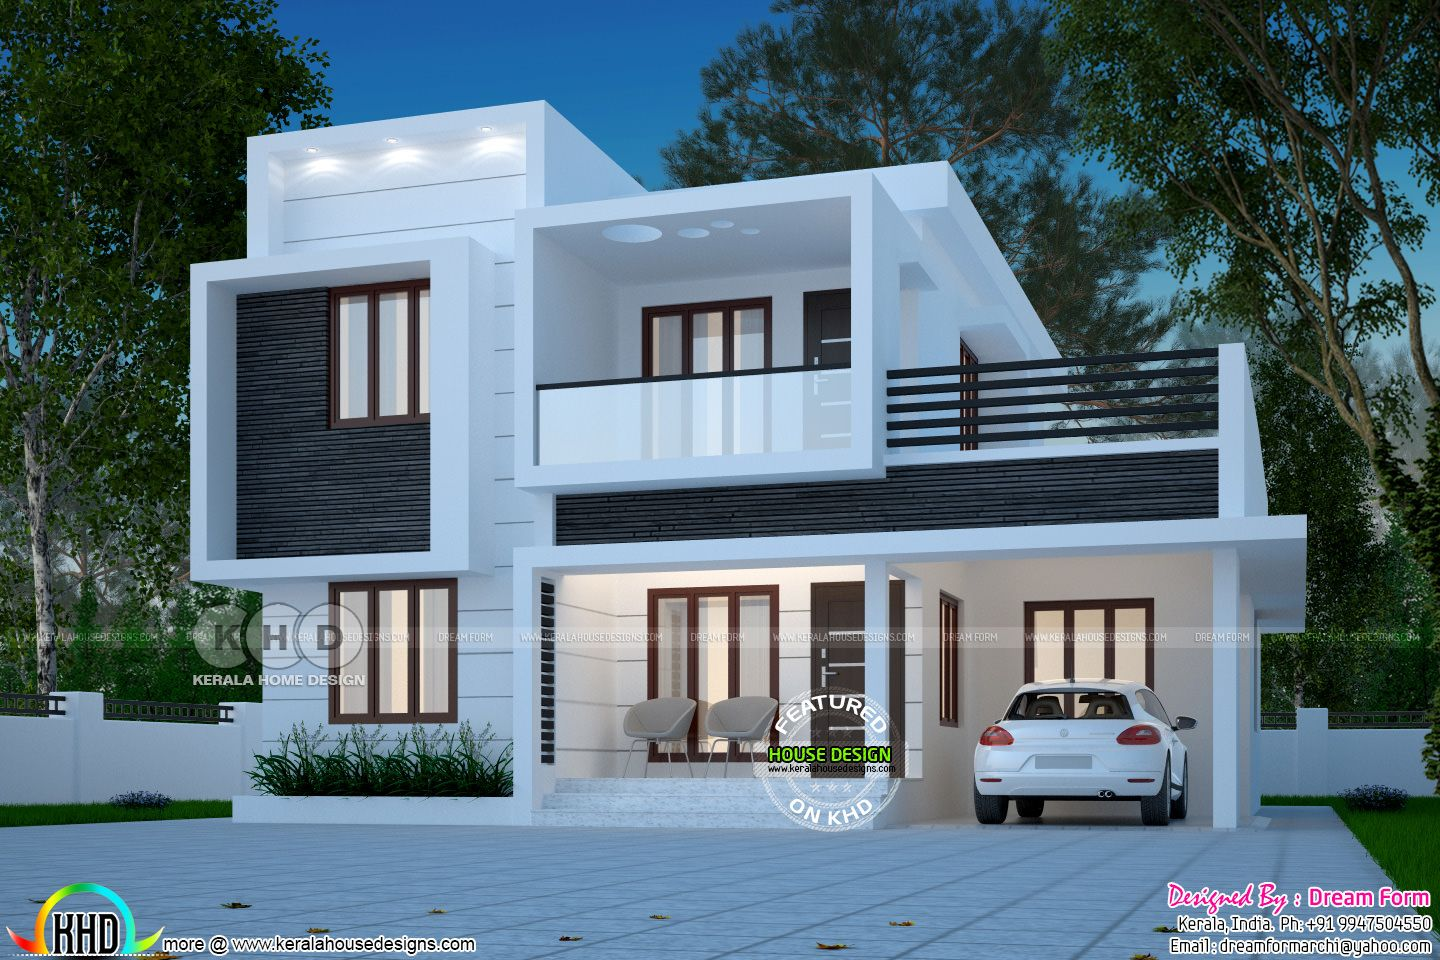 Box Model Home Kerala Jpg 1440 960 Kerala House Design House Design Pictures Beautiful House Plans